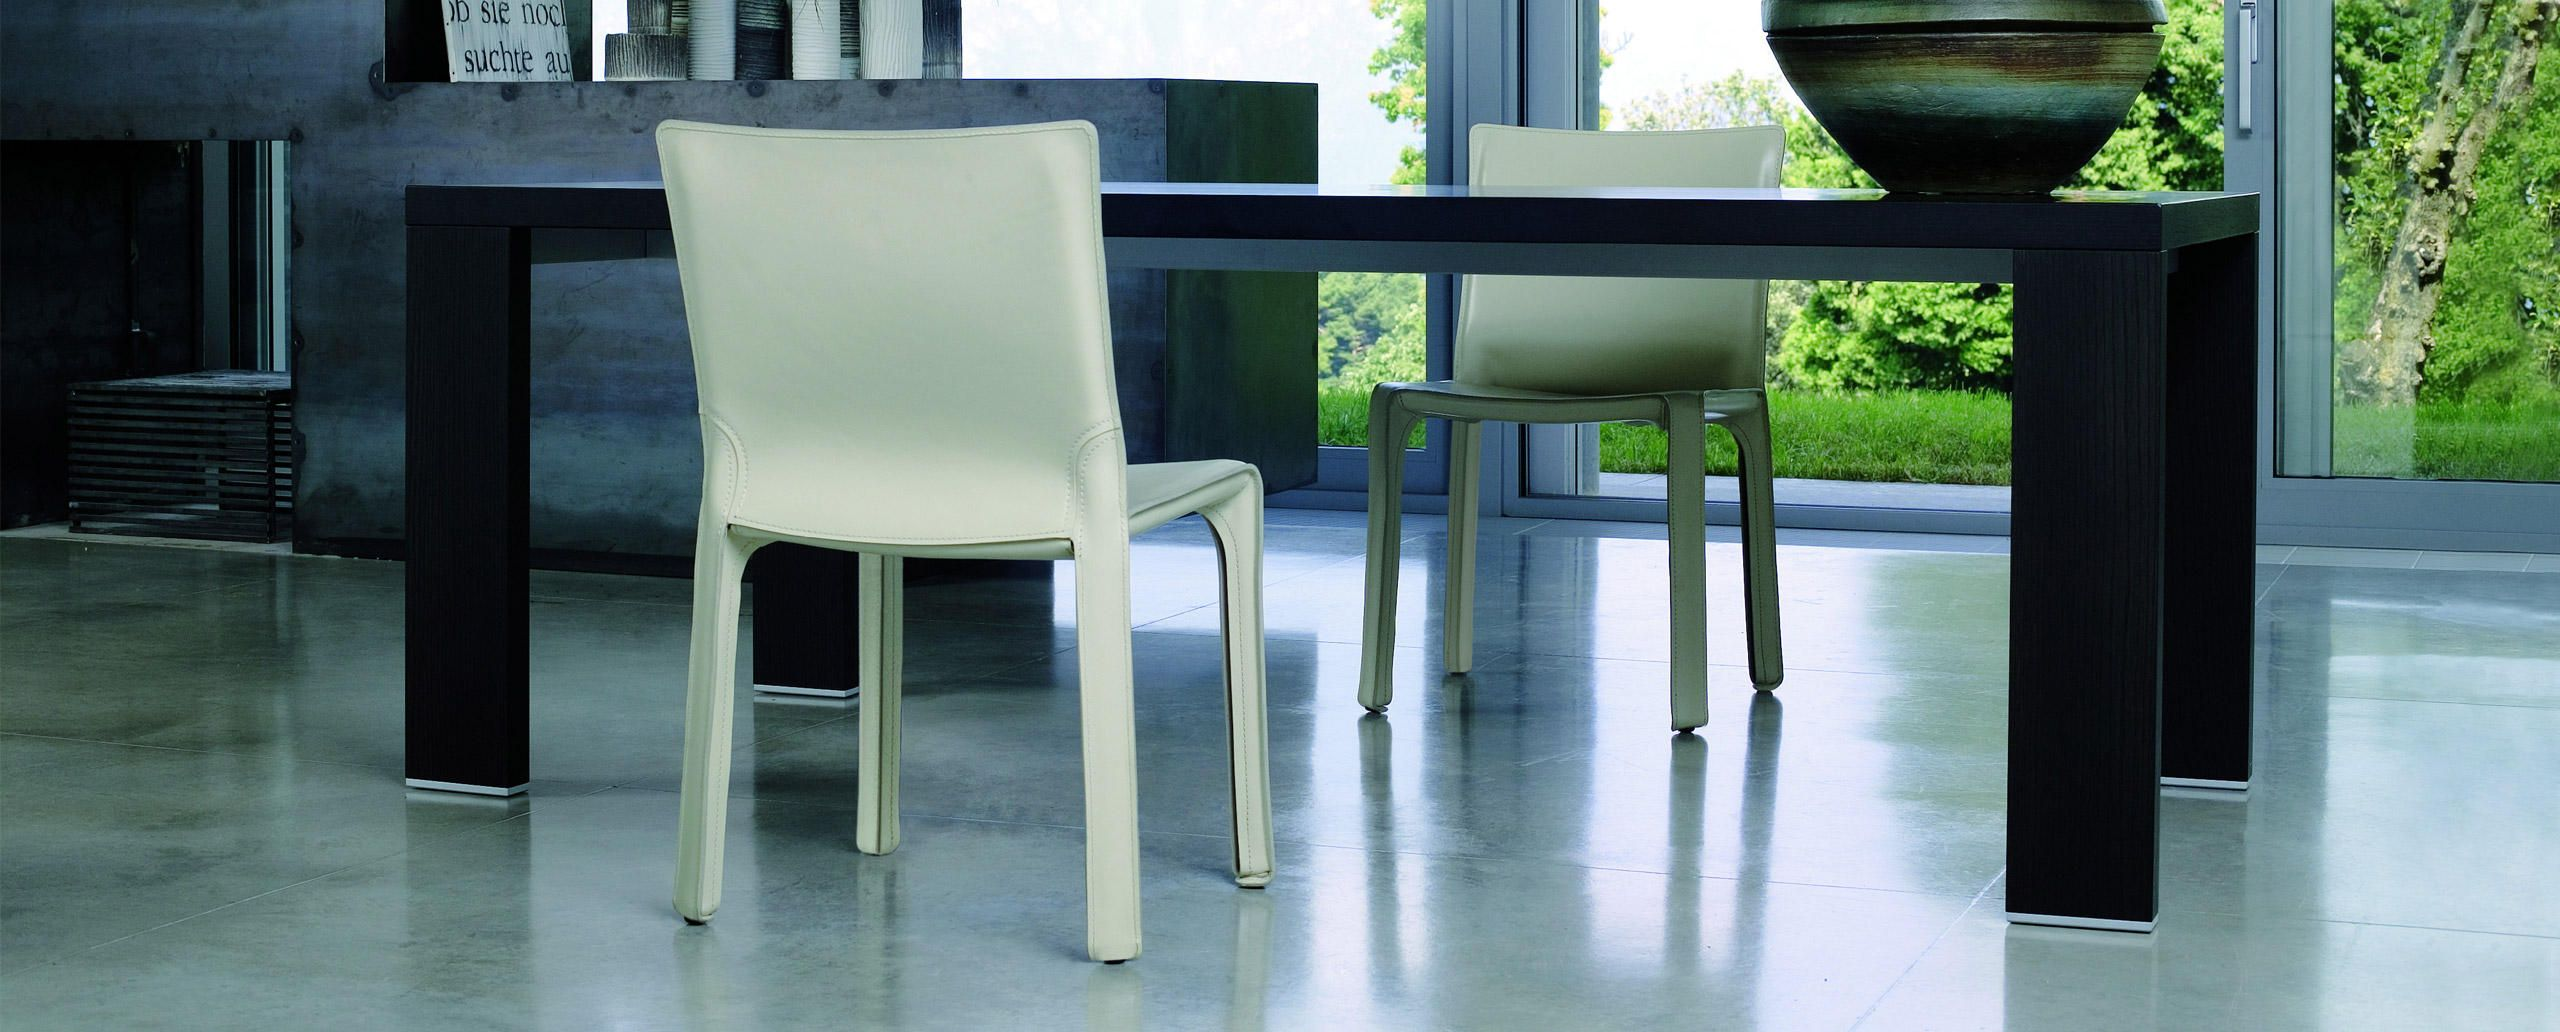 412 Cab Chair By Cassina Furniture Chair Dining Chairs